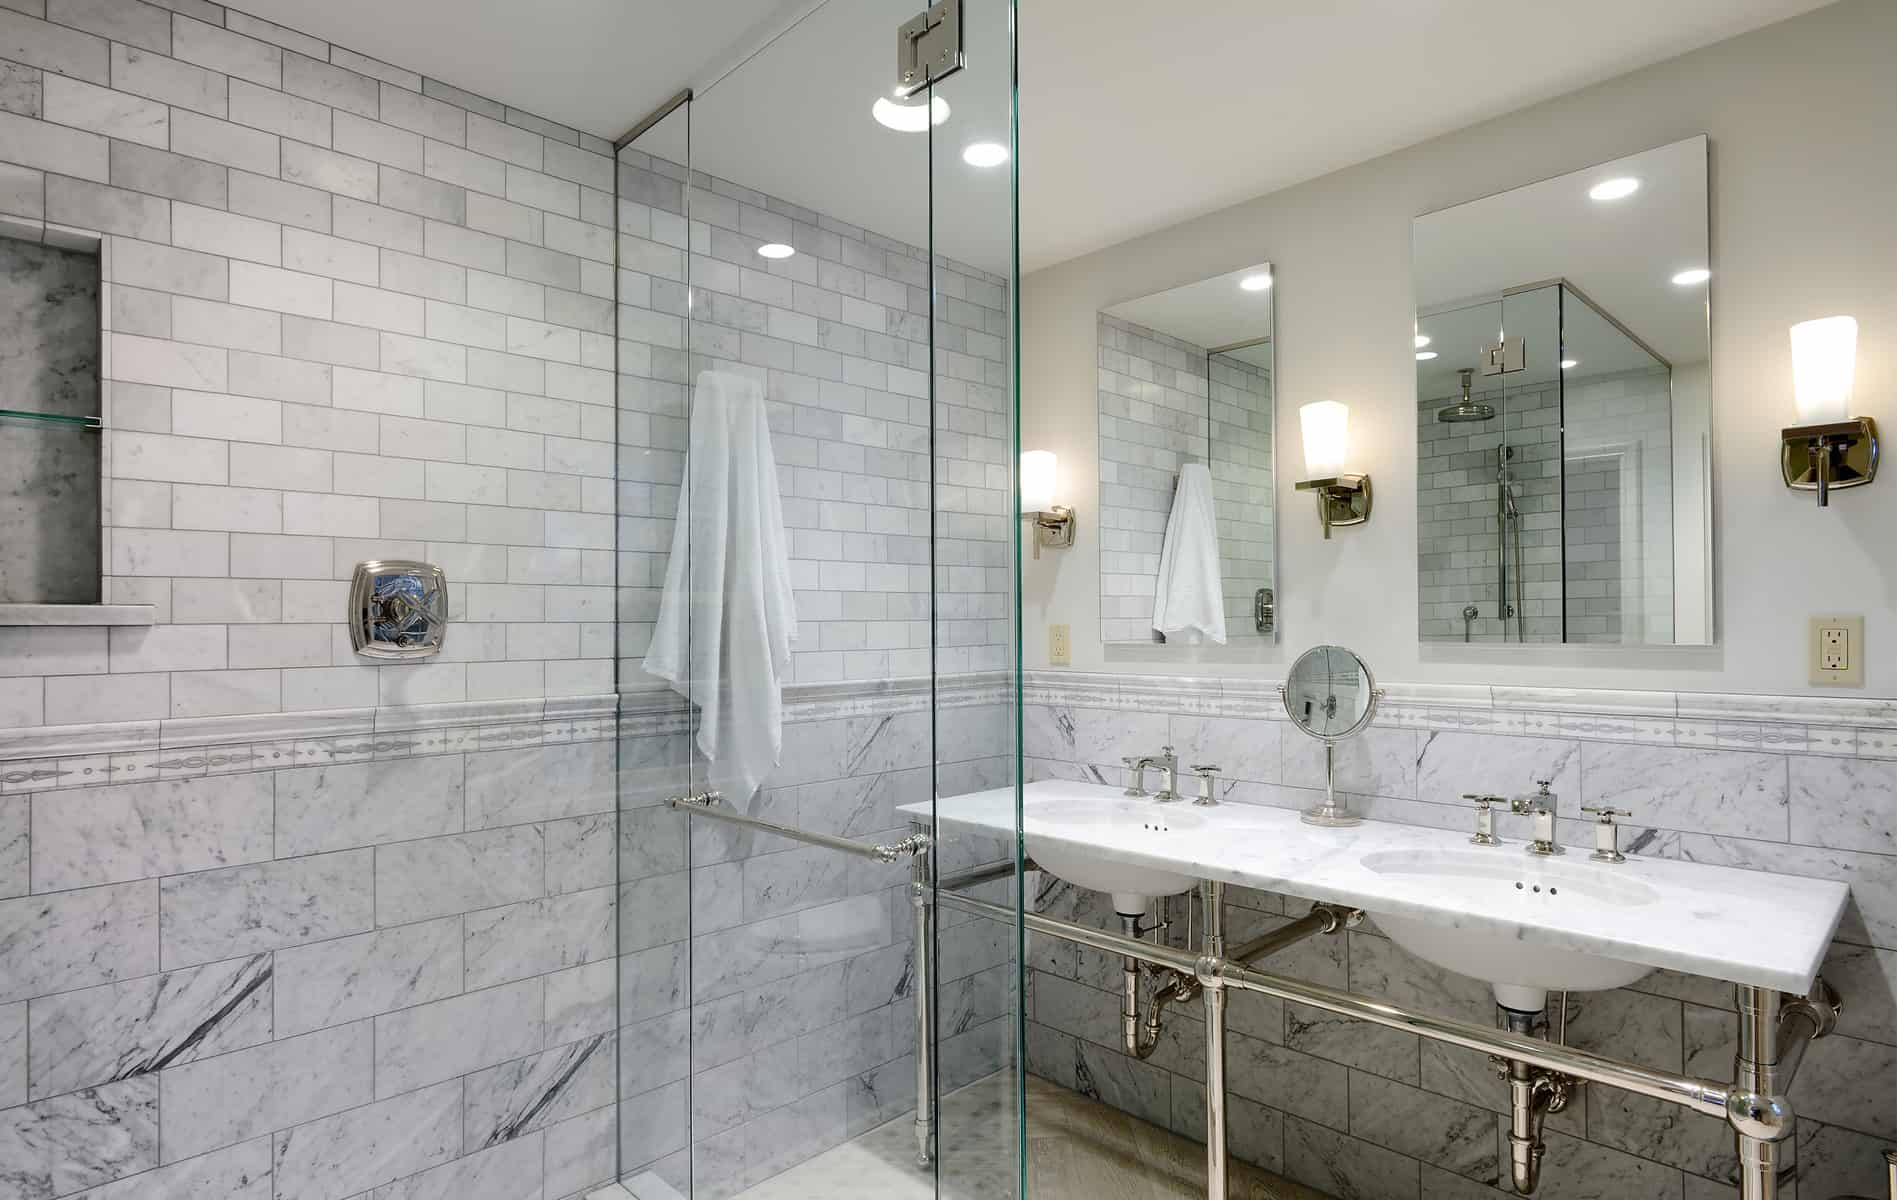 Smart Strategies For Bathroom Remodeling Biederman Real - How to completely remodel a bathroom